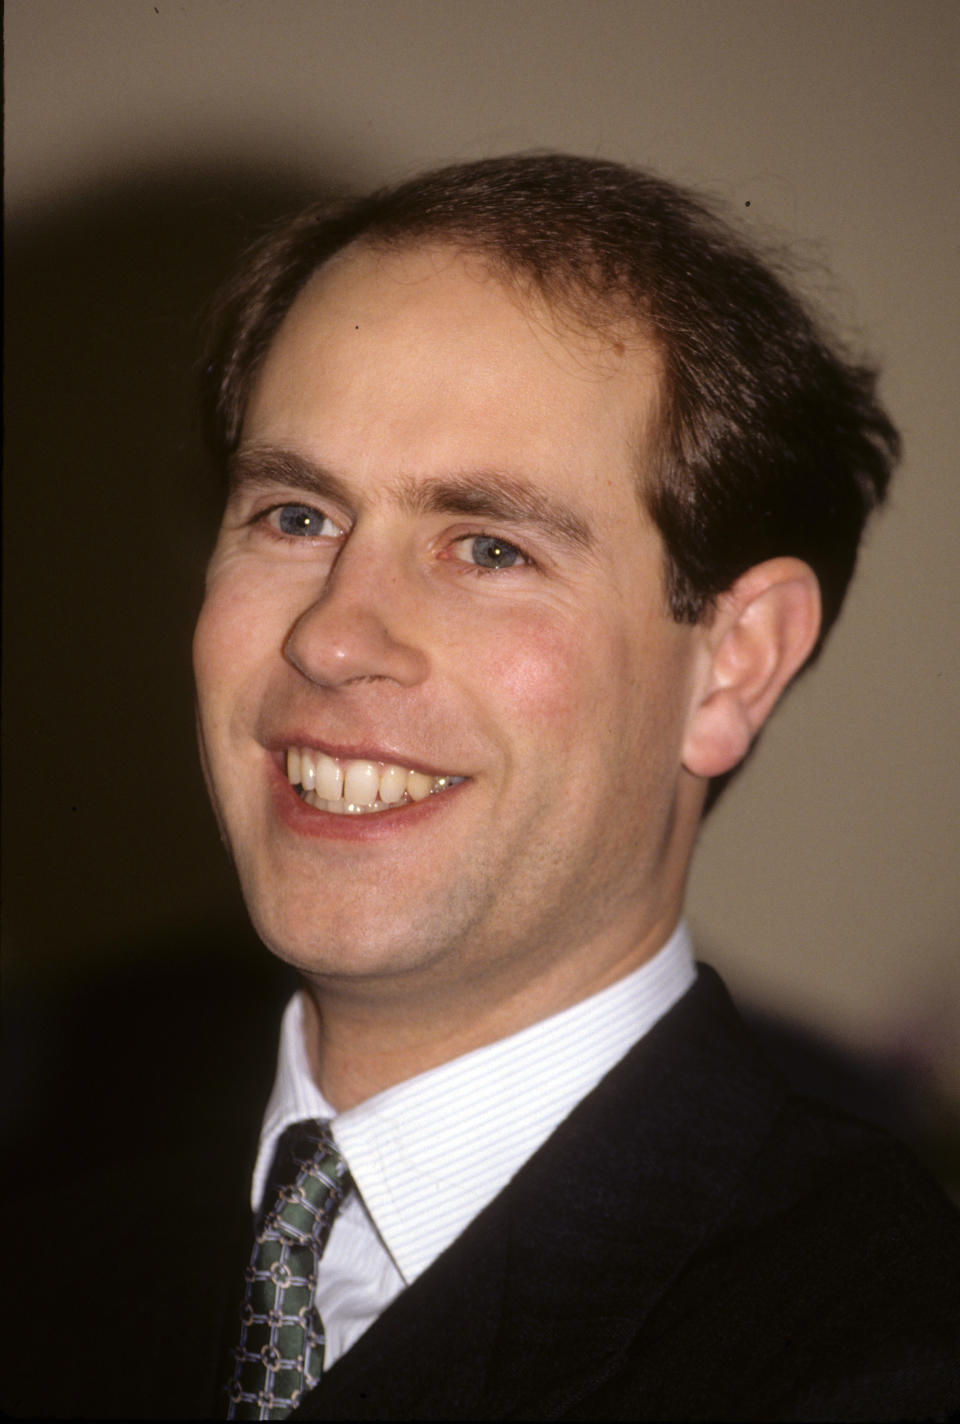 Prince Edward pictured in 1992. (Photo by Anwar Hussein/Getty Images)